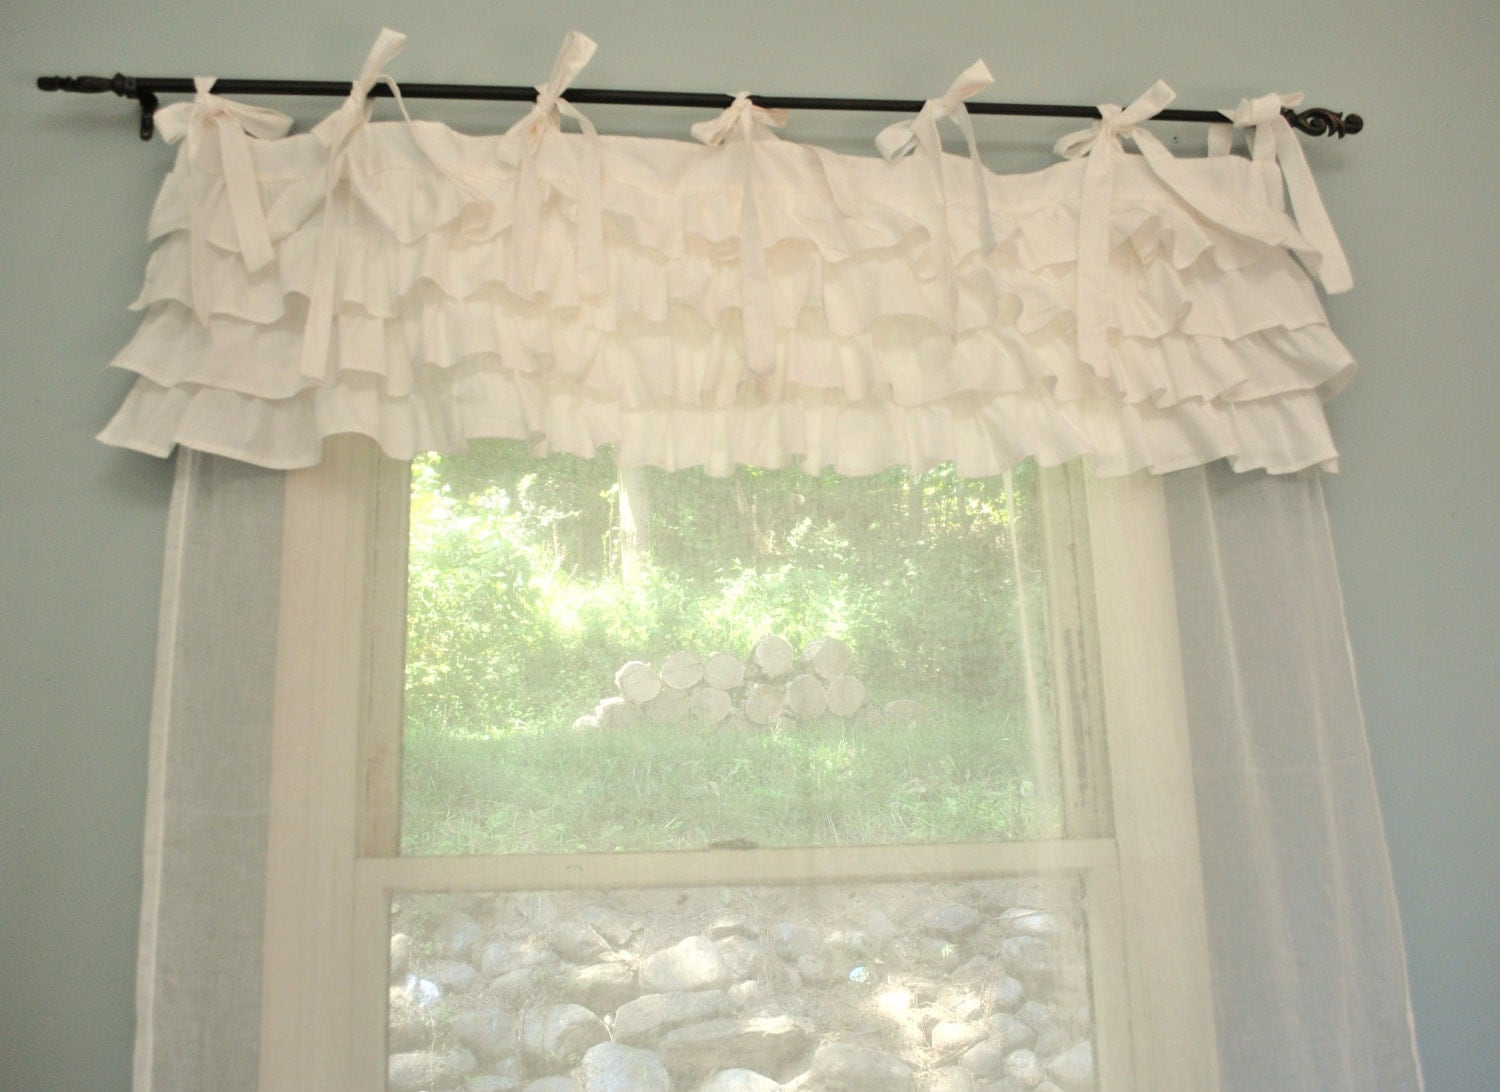 Shabby Chic Bedroom Curtains by PaulaAndErika on Etsy